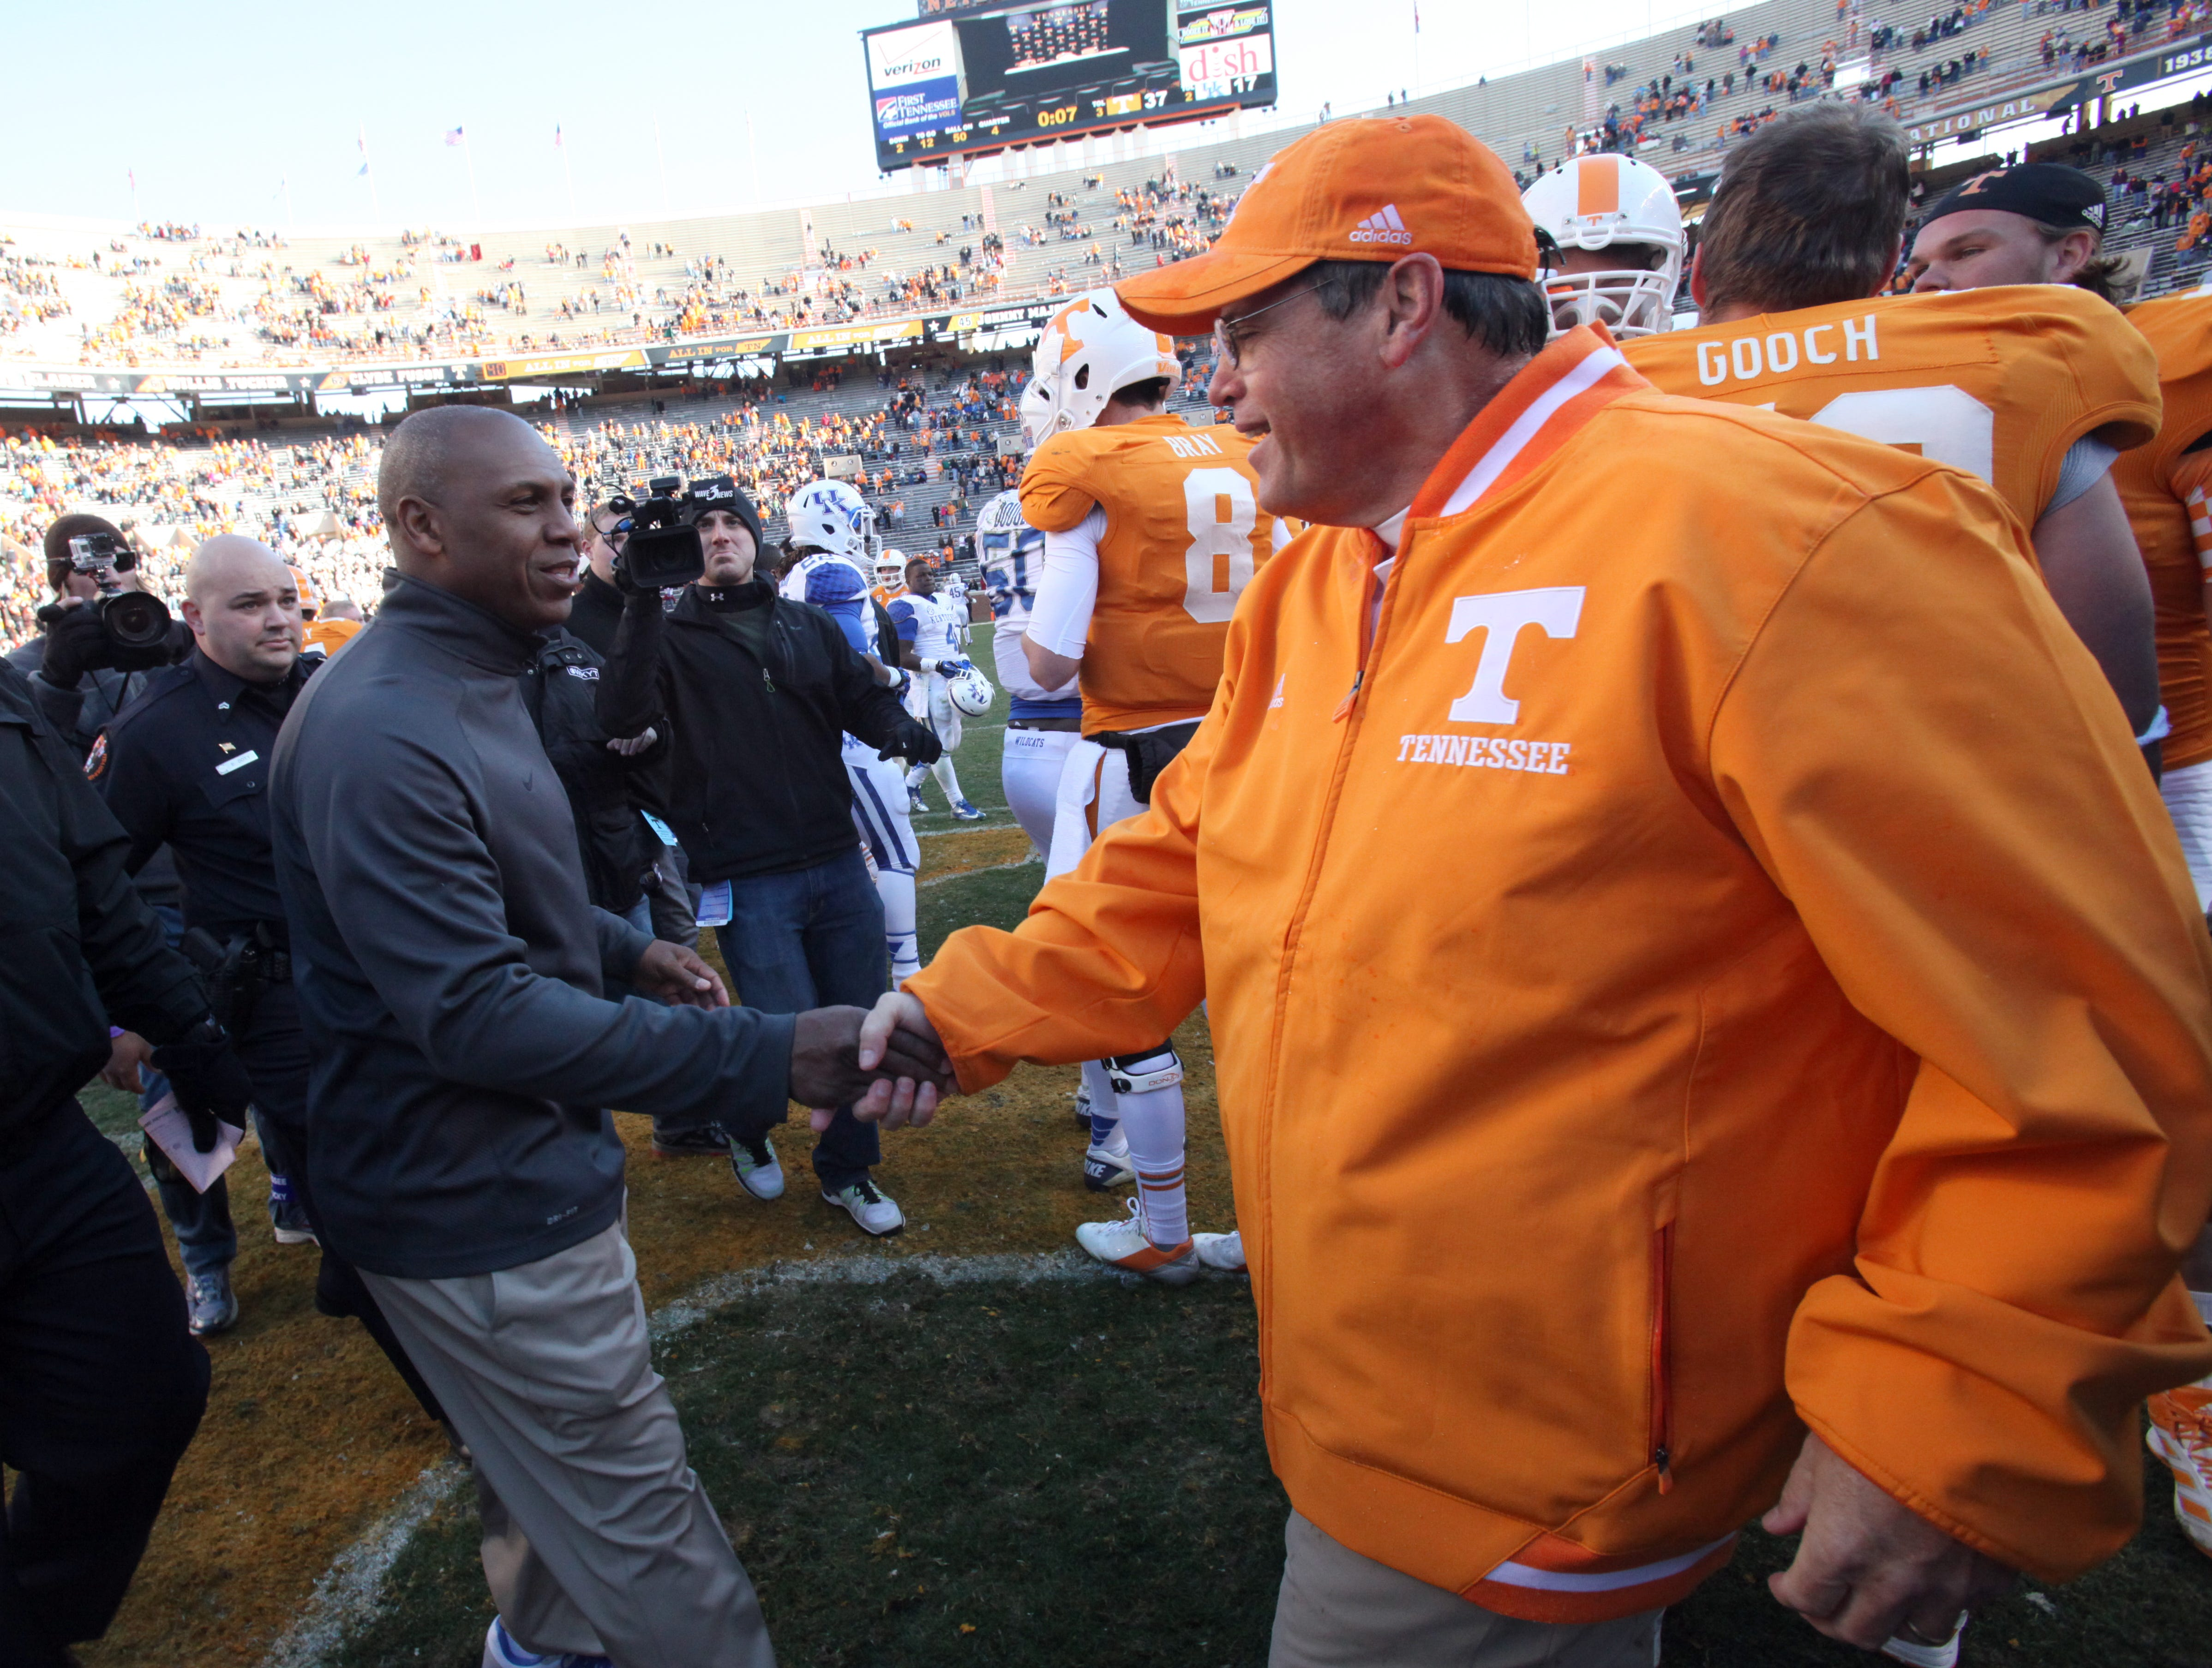 Tennessee interim head coach Jim Chaney, right, shakes hands with Kentucky head coach Joker Phillips, left, after the Vols defeated the Wildcats 37-17 at Neyland Stadium Saturday, Nov. 24, 2012.